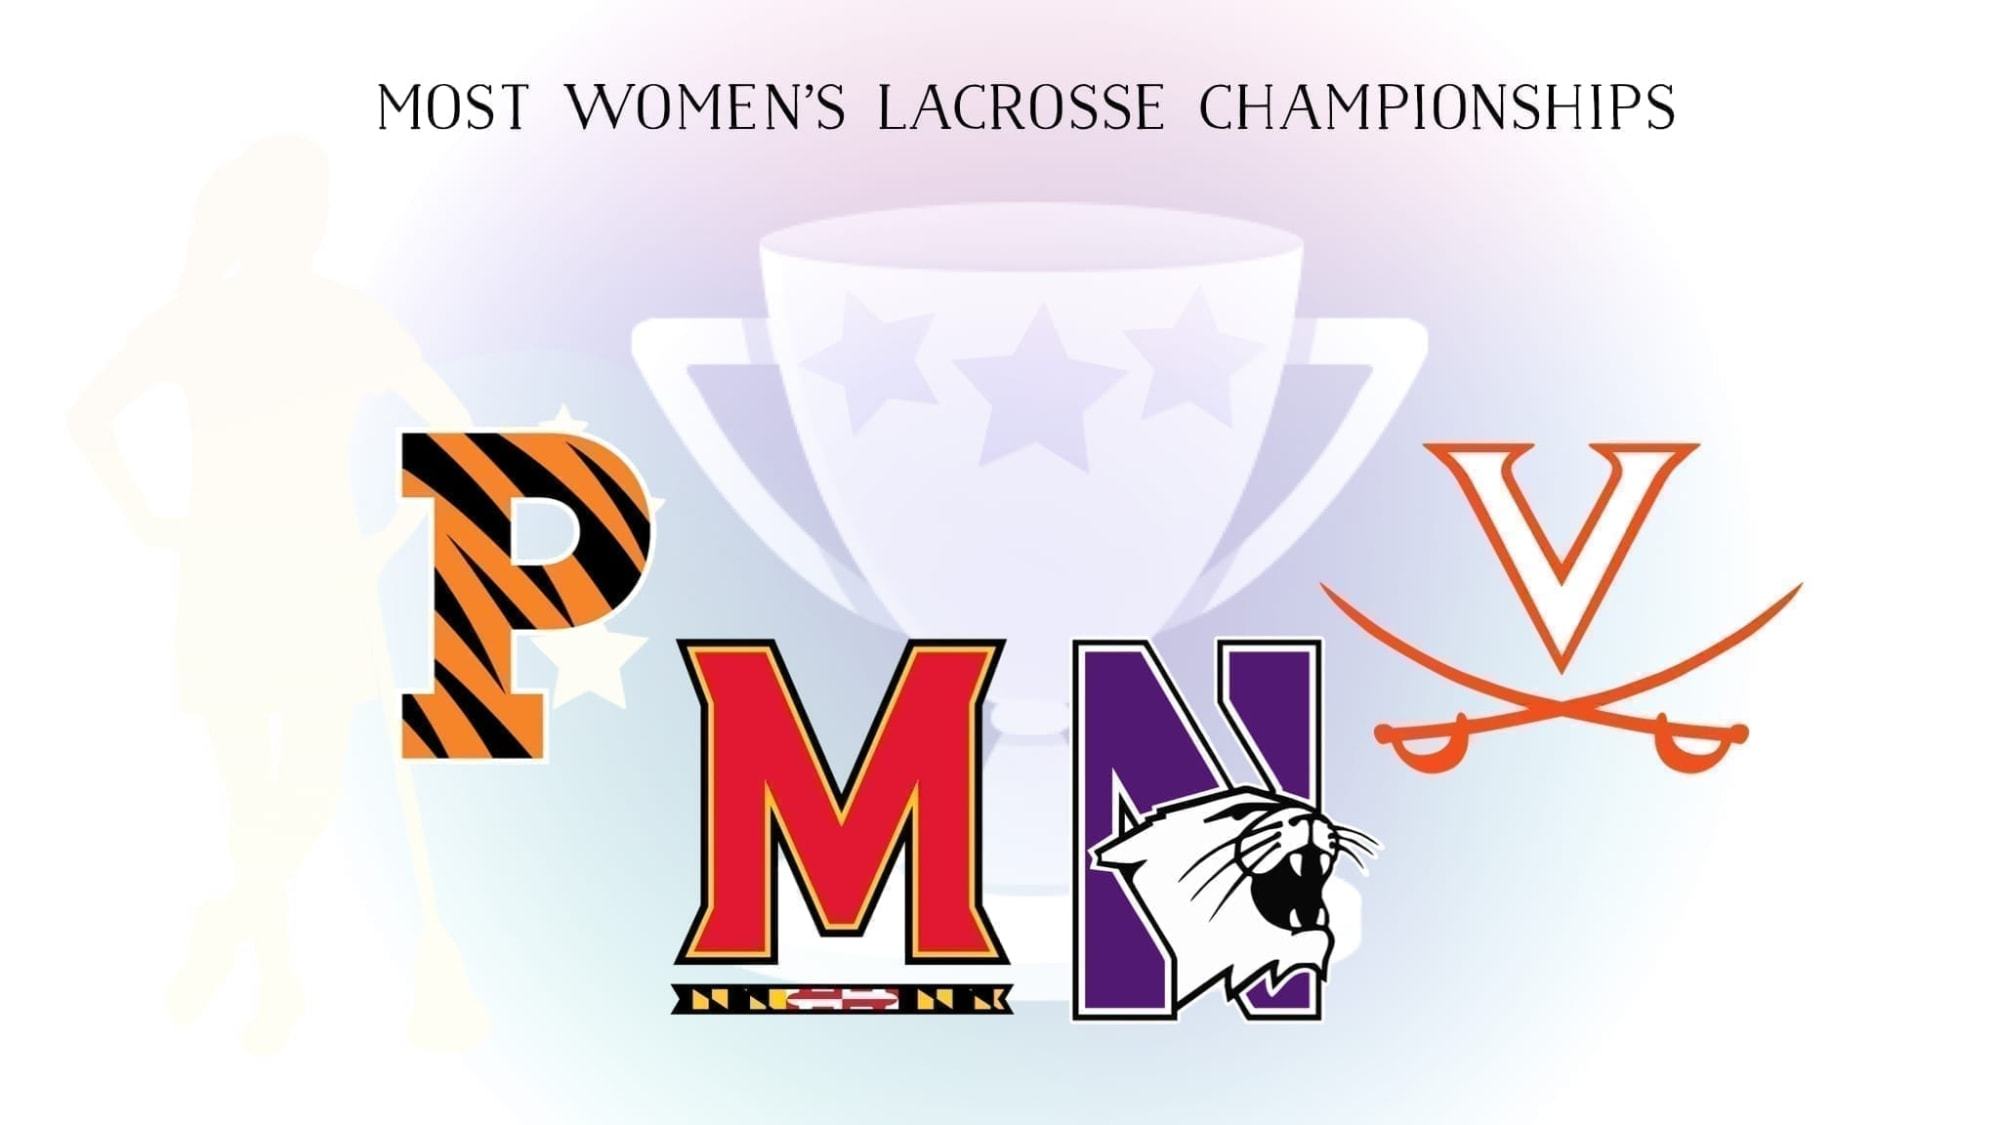 Since 1982, the NCAA has sponsored a Division I women's lacrosse tournament. Who has the most women's college lacrosse championships?